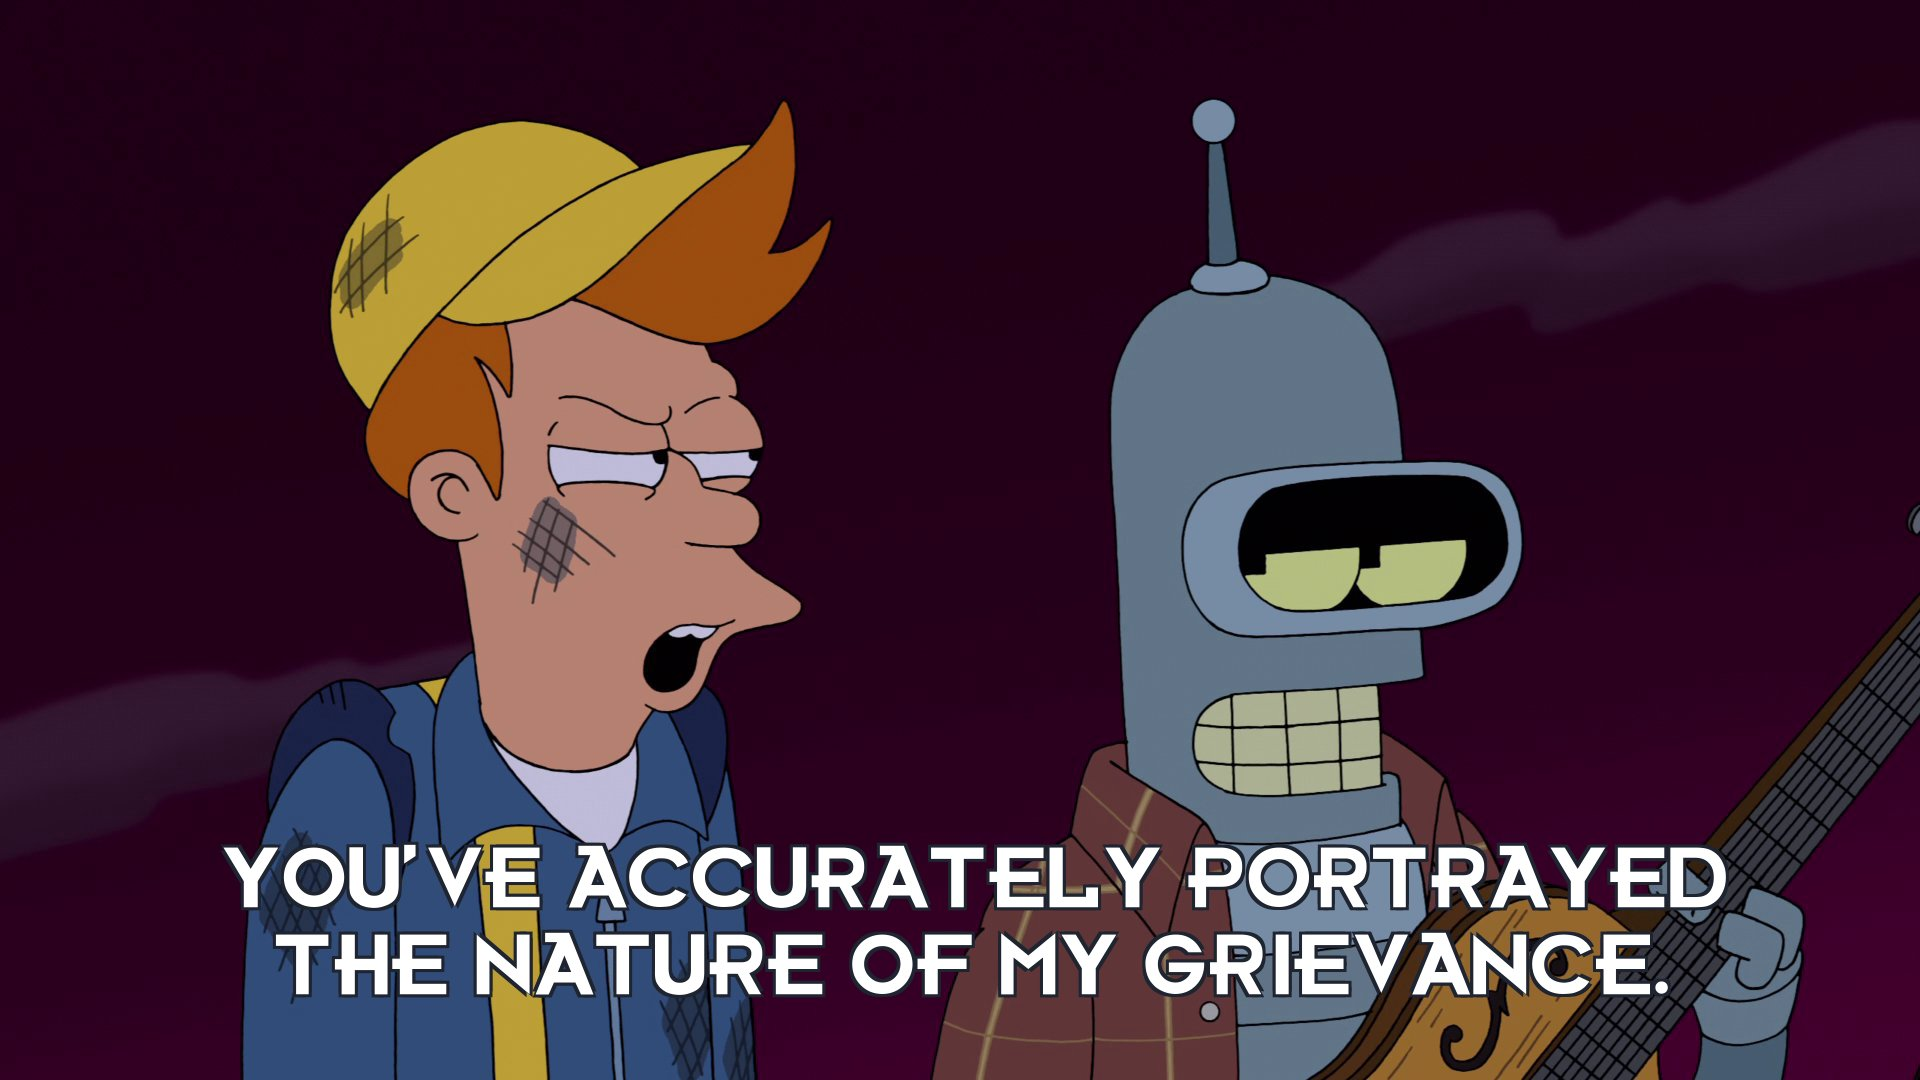 Philip J Fry: You've accurately portrayed the nature of my grievance.